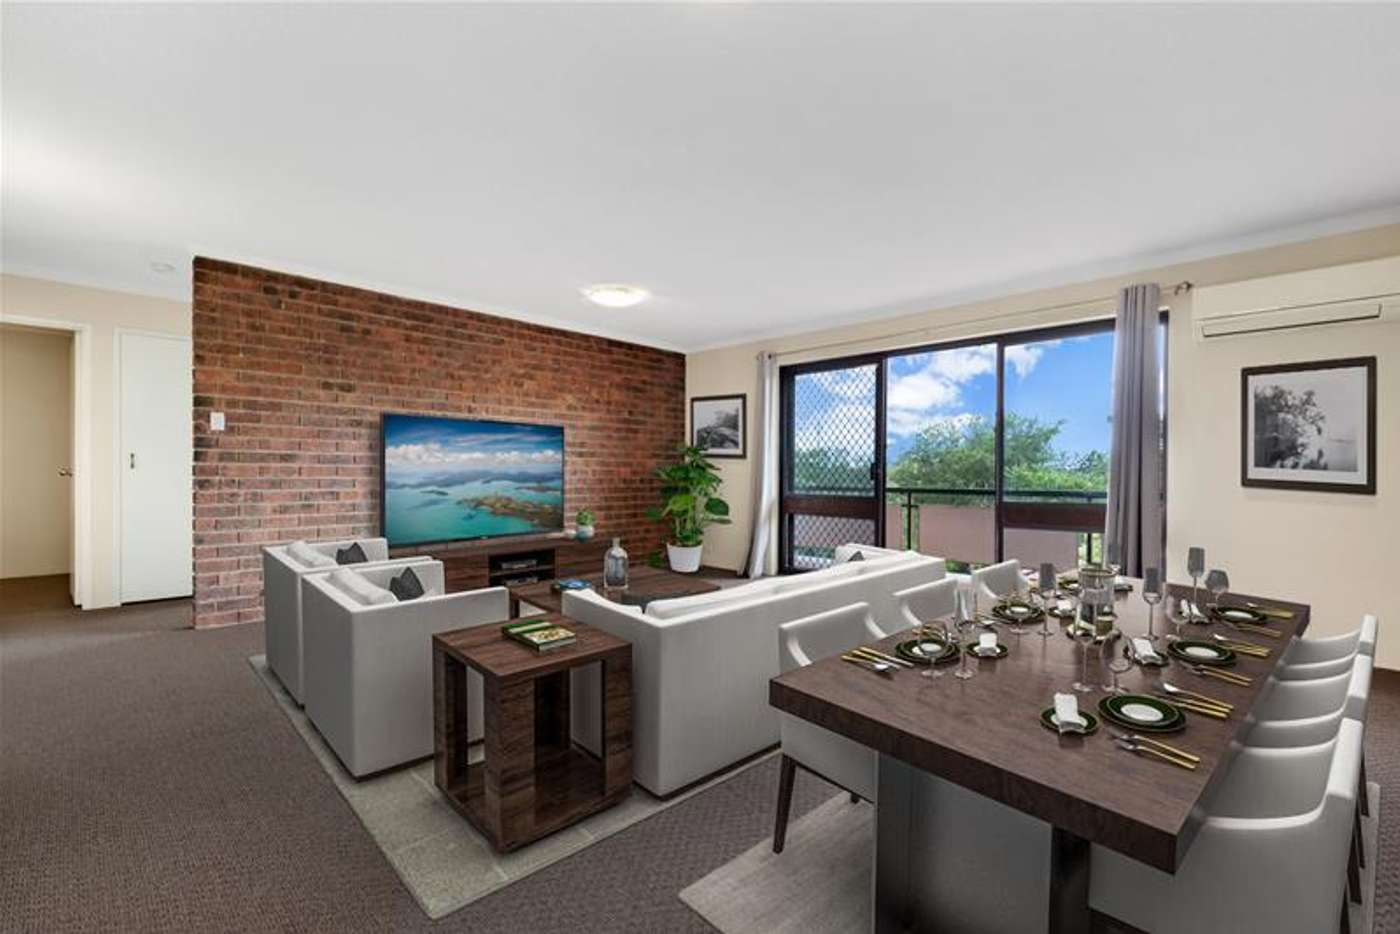 Main view of Homely apartment listing, 5/39 Monro Street, Kelvin Grove QLD 4059